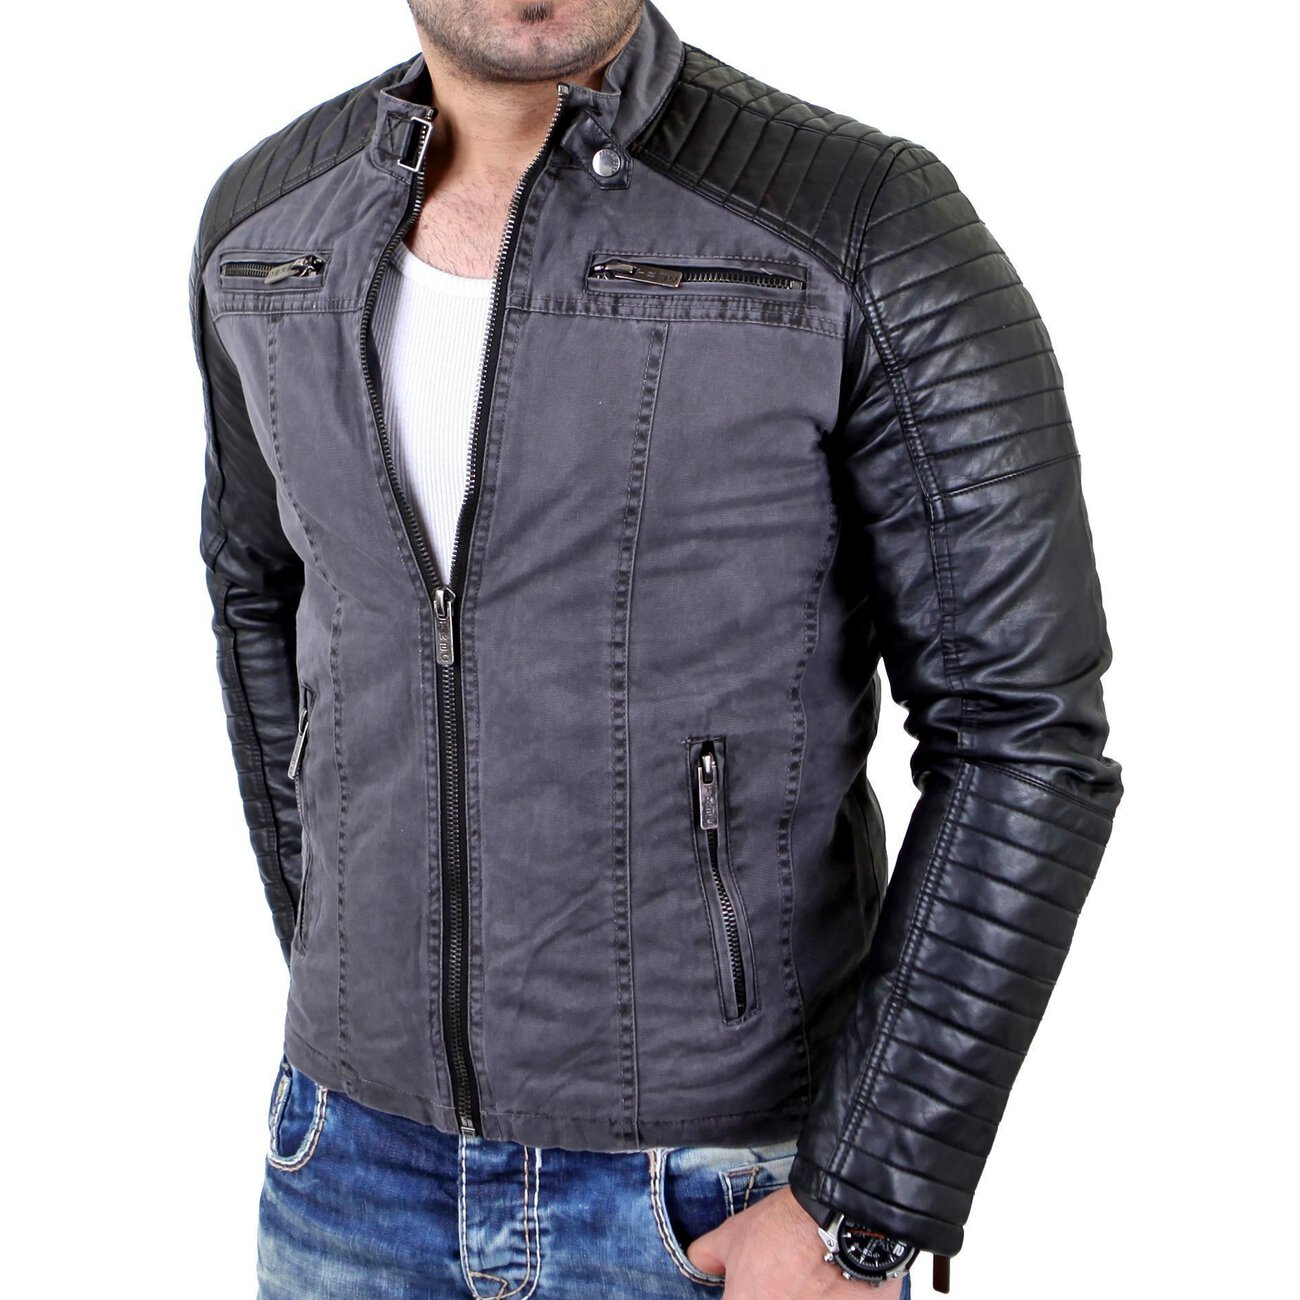 redbridge lederjacke herren biker kunst lederjacke rb 41451 anthrazit. Black Bedroom Furniture Sets. Home Design Ideas